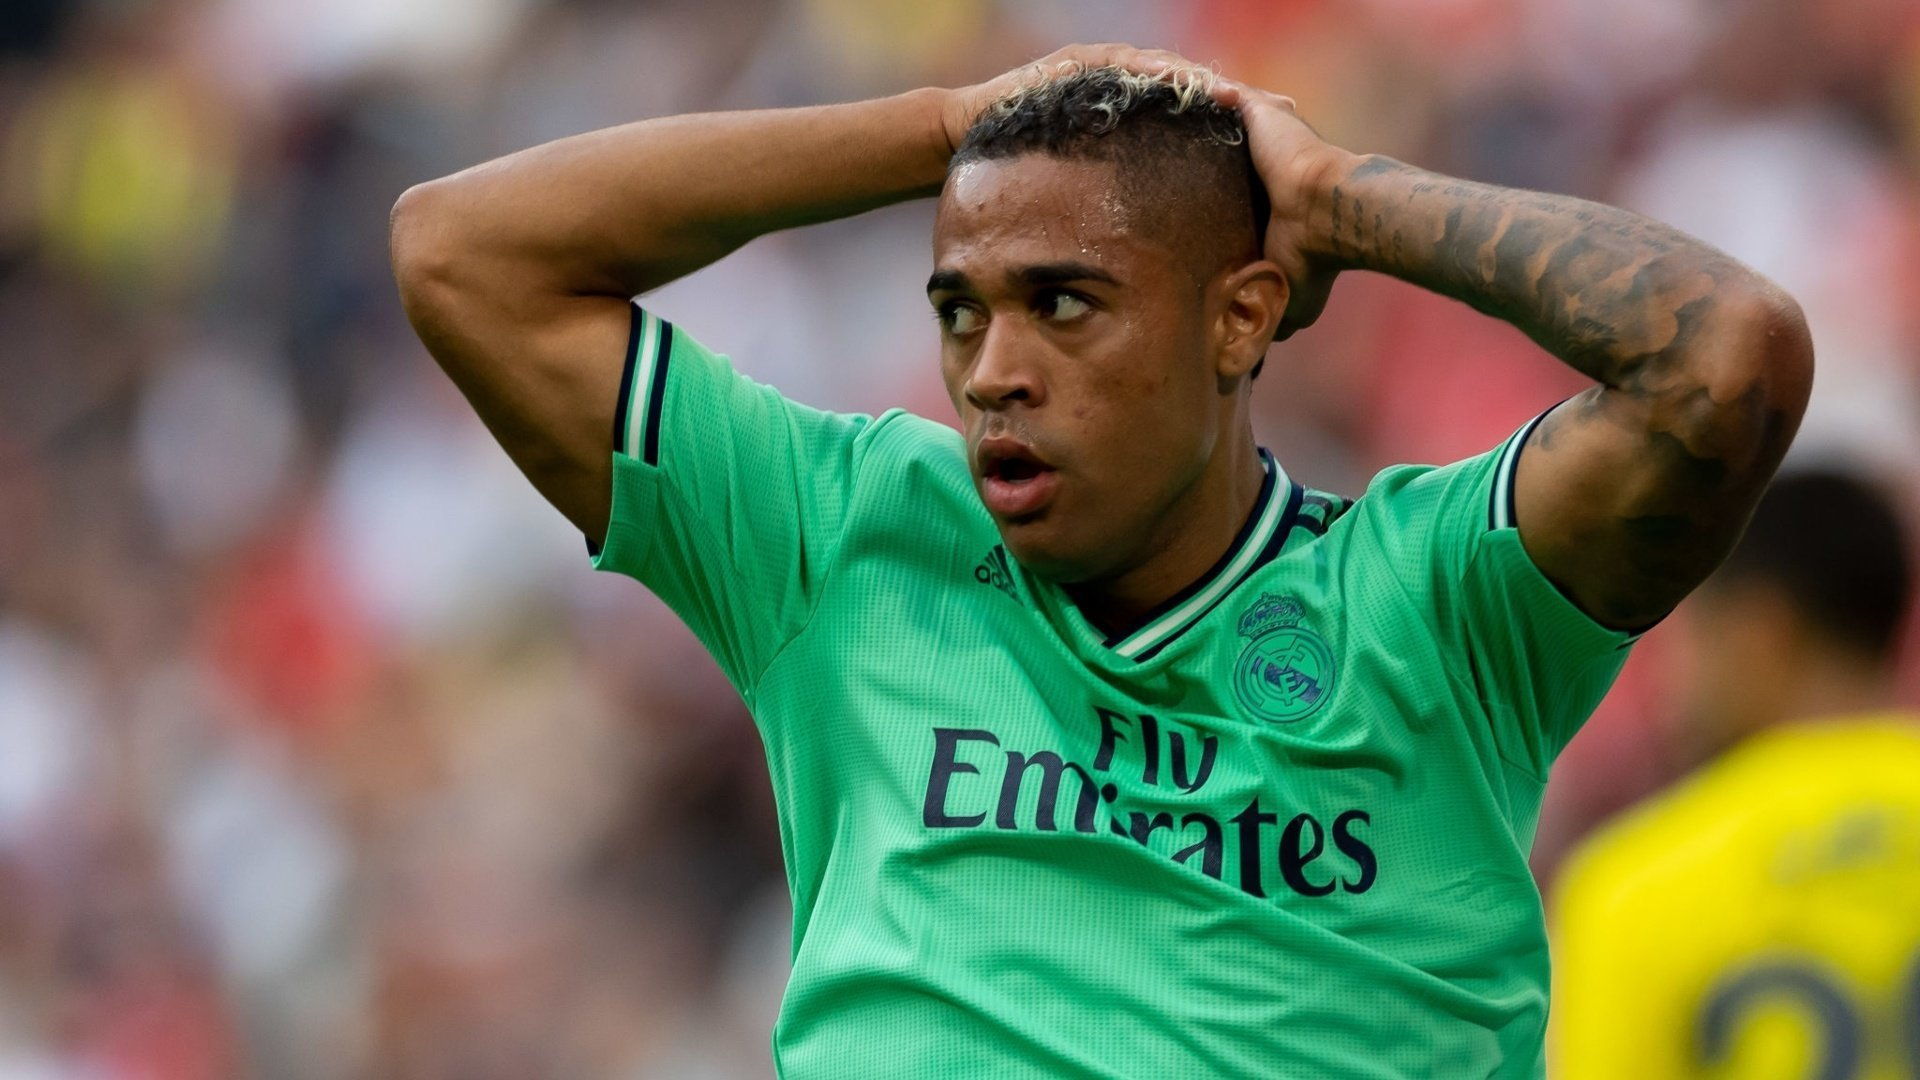 What's next for Mariano Díaz ?